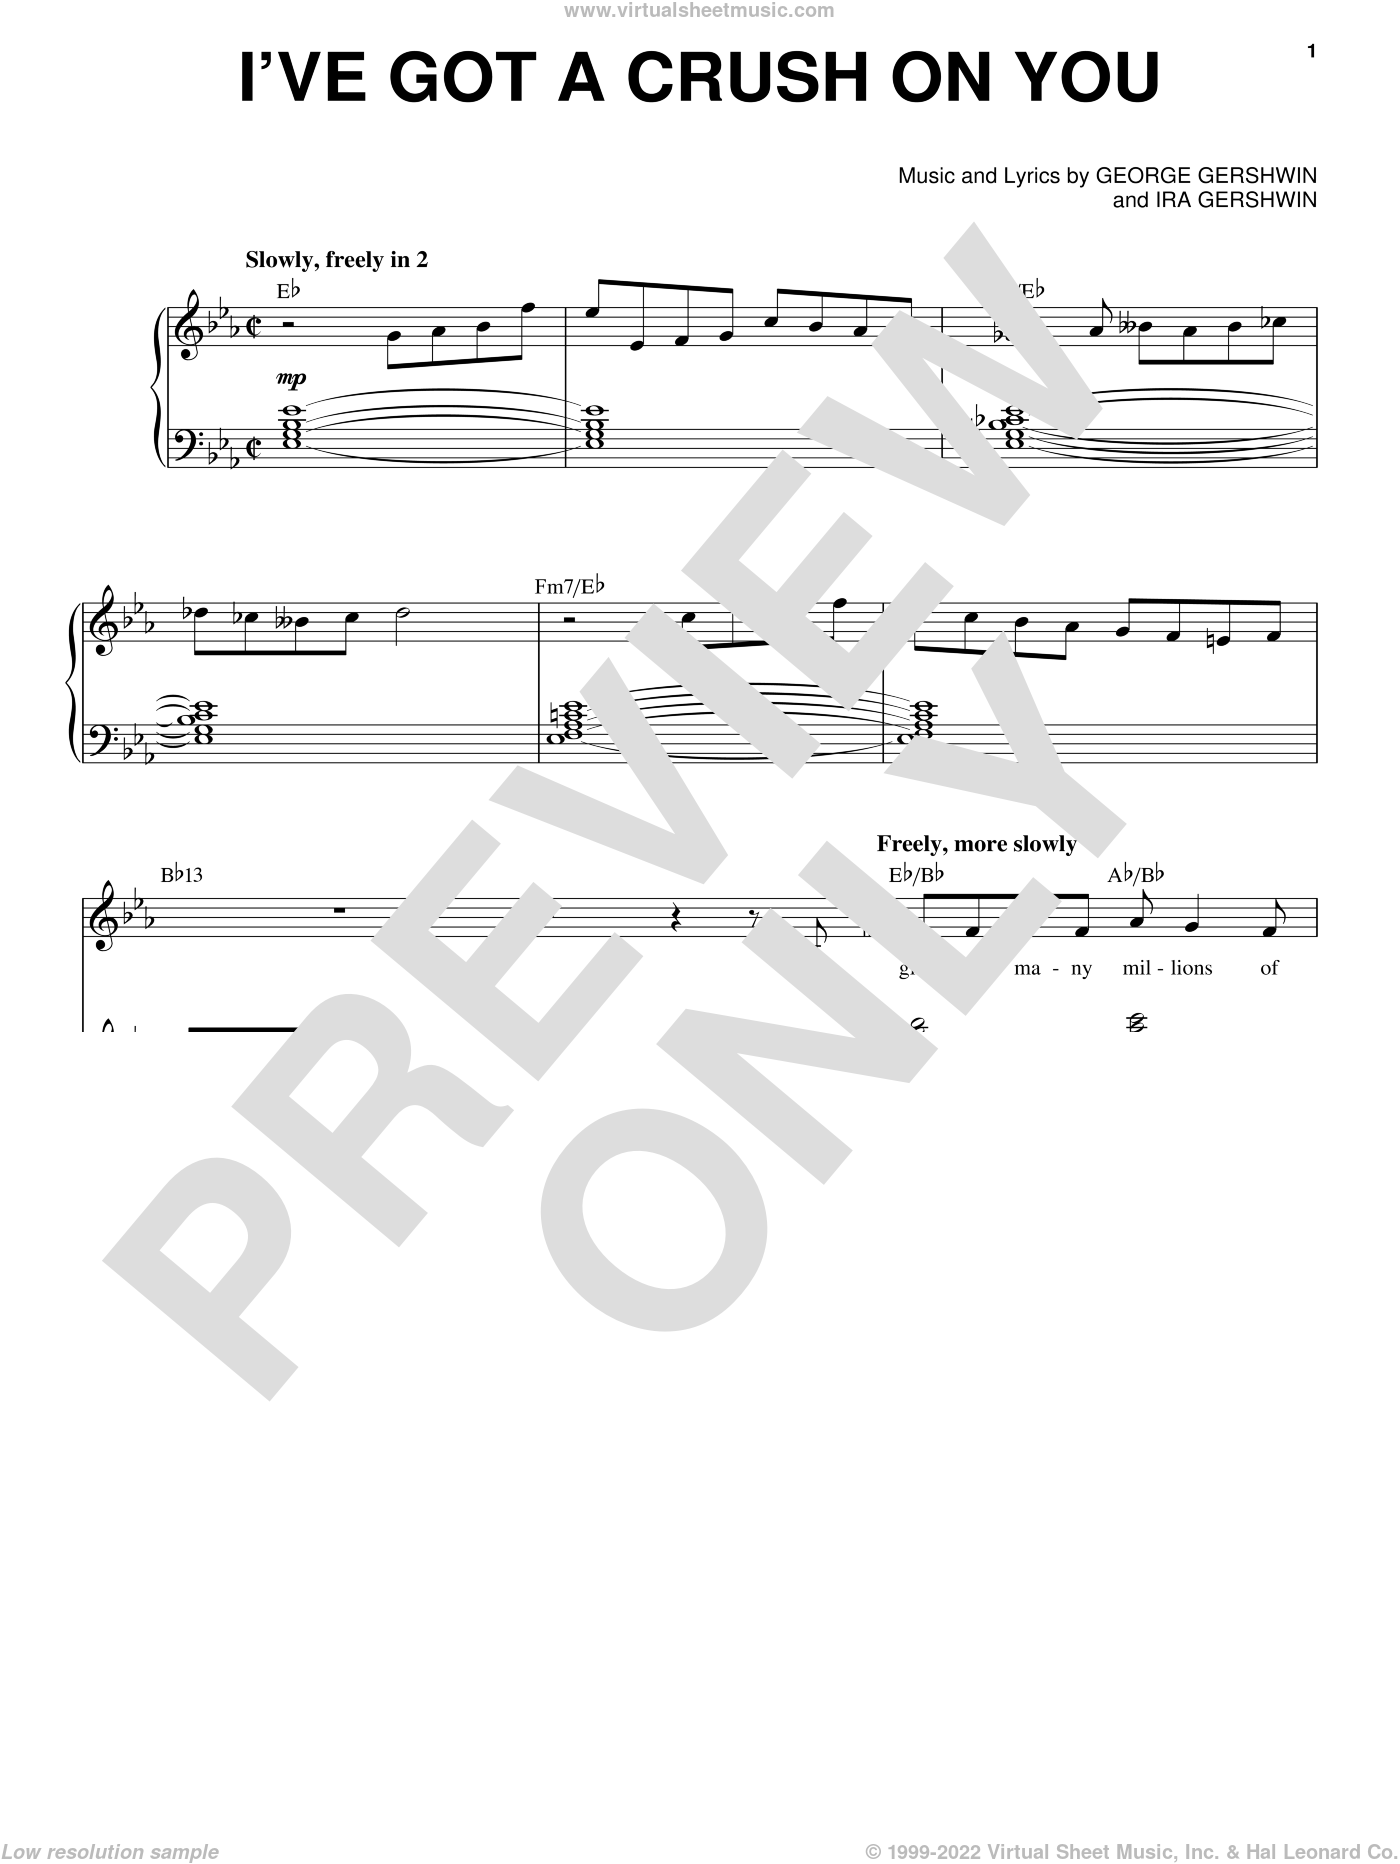 I've Got A Crush On You sheet music for voice and piano by Frank Sinatra, George Gershwin and Ira Gershwin, intermediate skill level